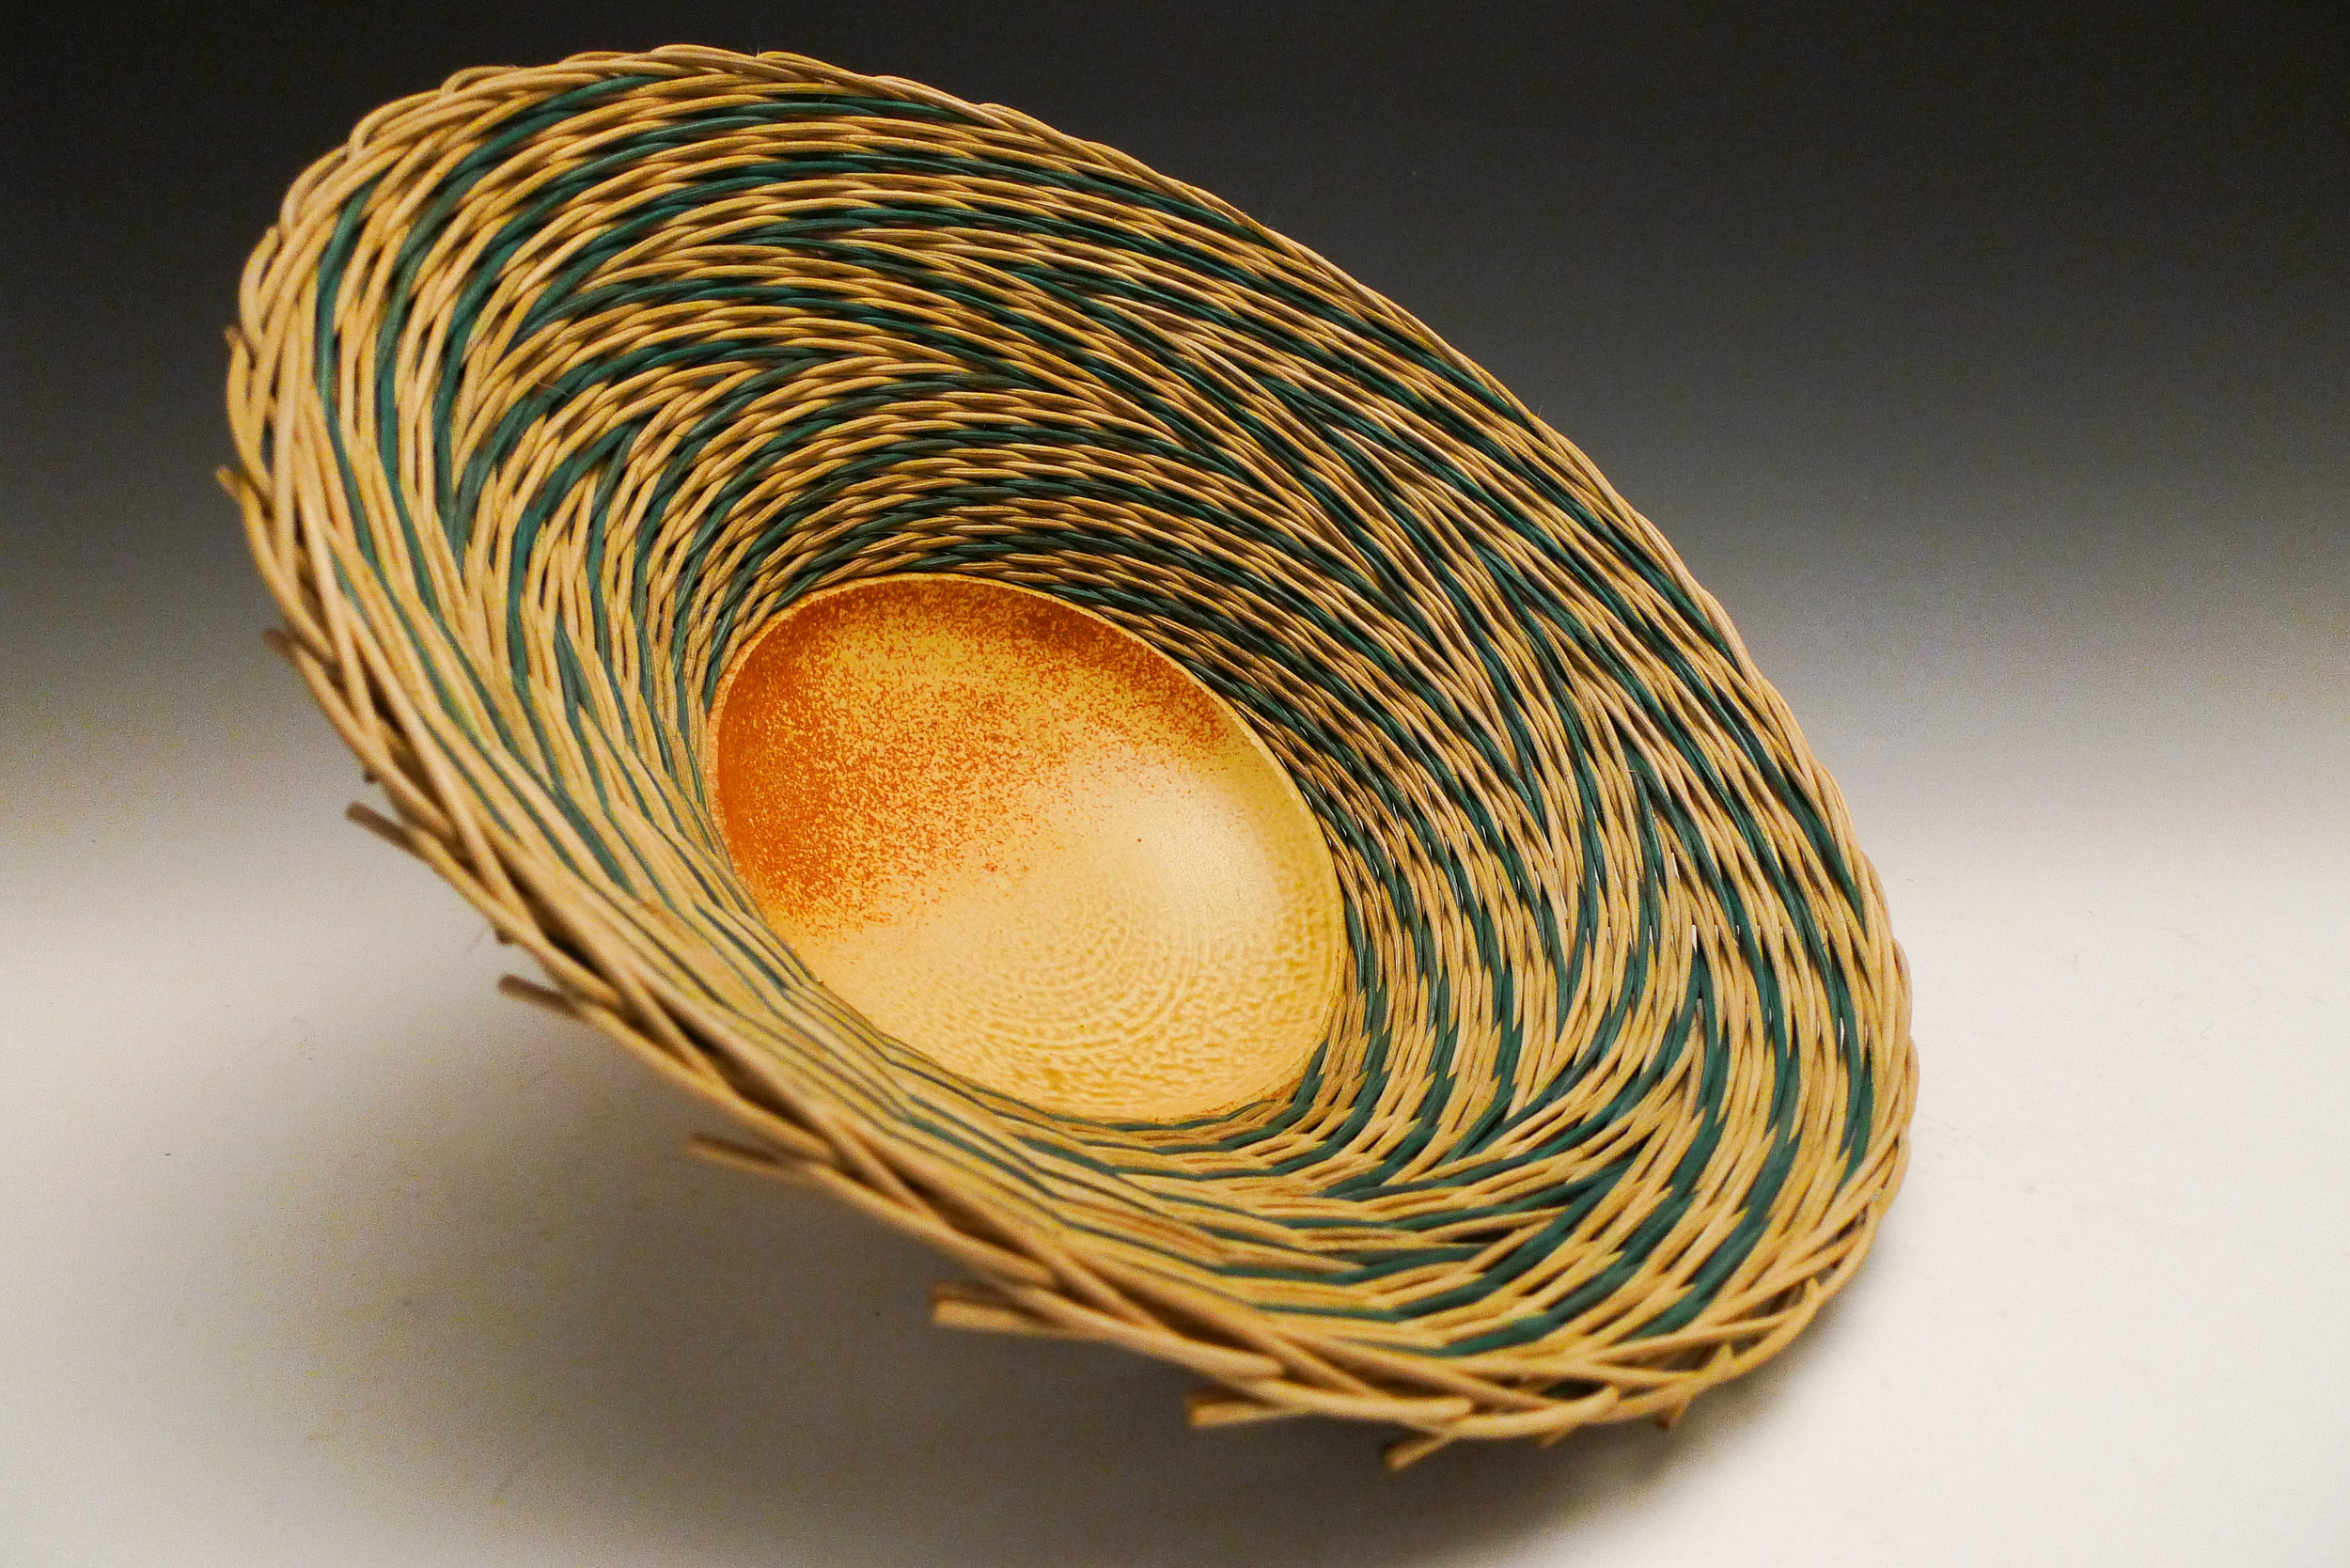 Basket rattan died with procion and walnuts, stoneware SOLD